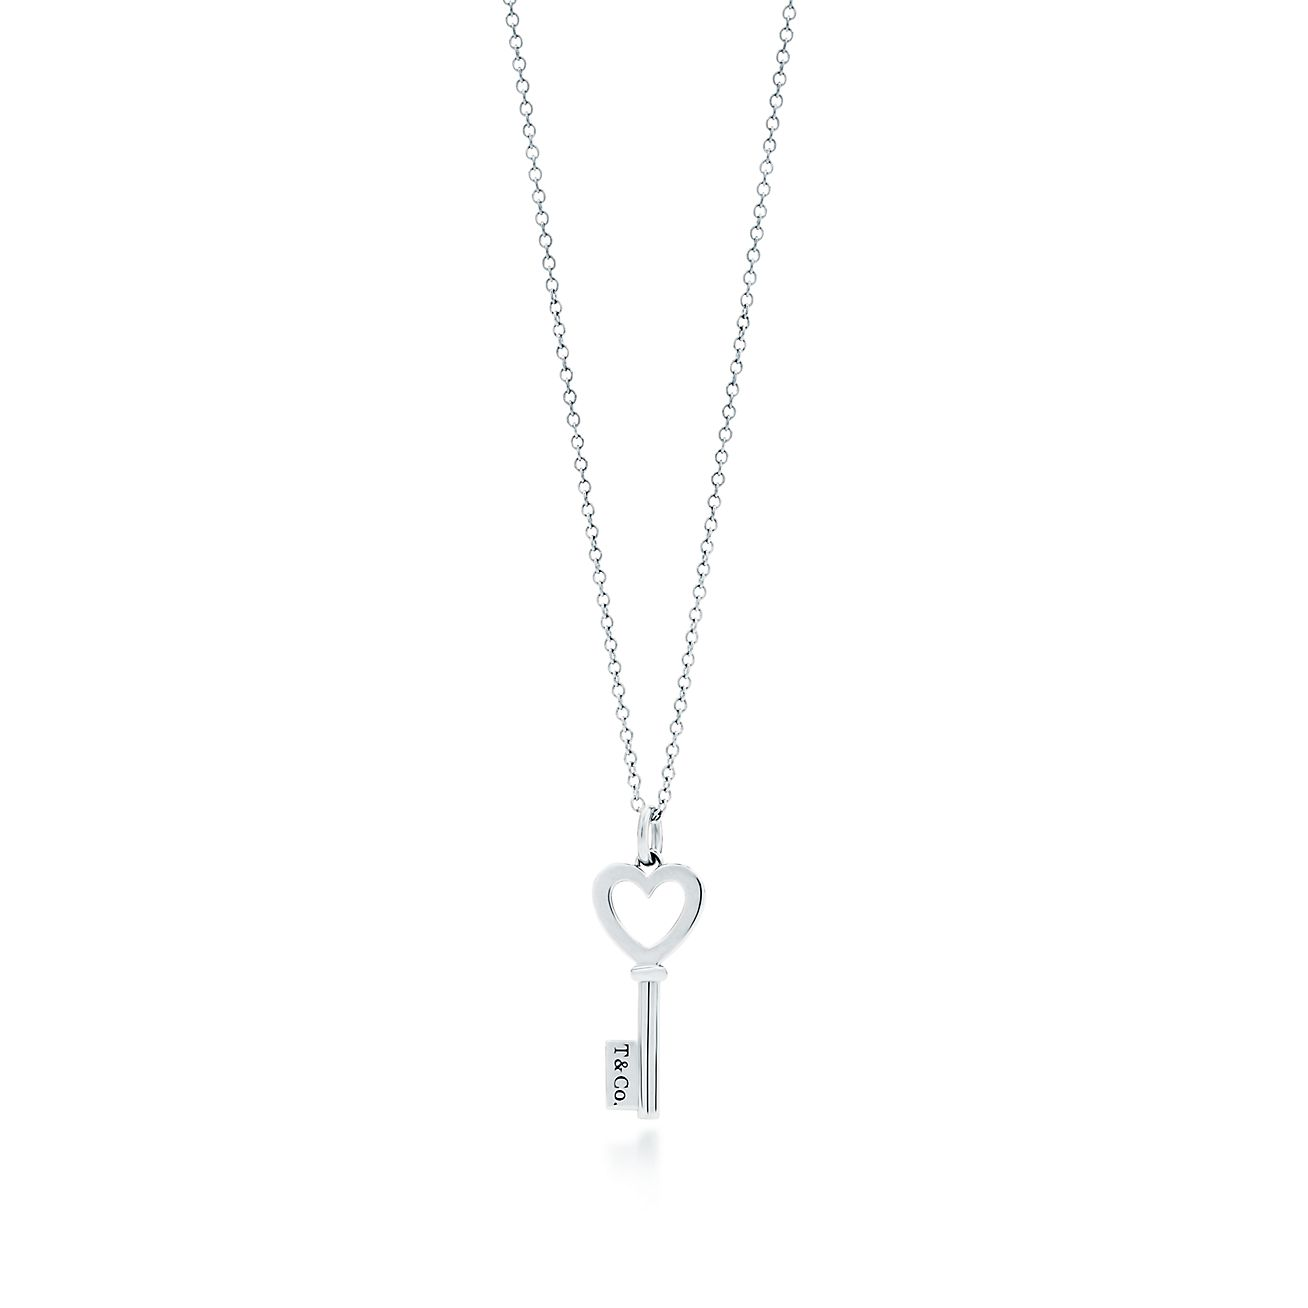 Tiffany Keys Return to Tiffany heart key pendant in sterling silver Tiffany & Co.